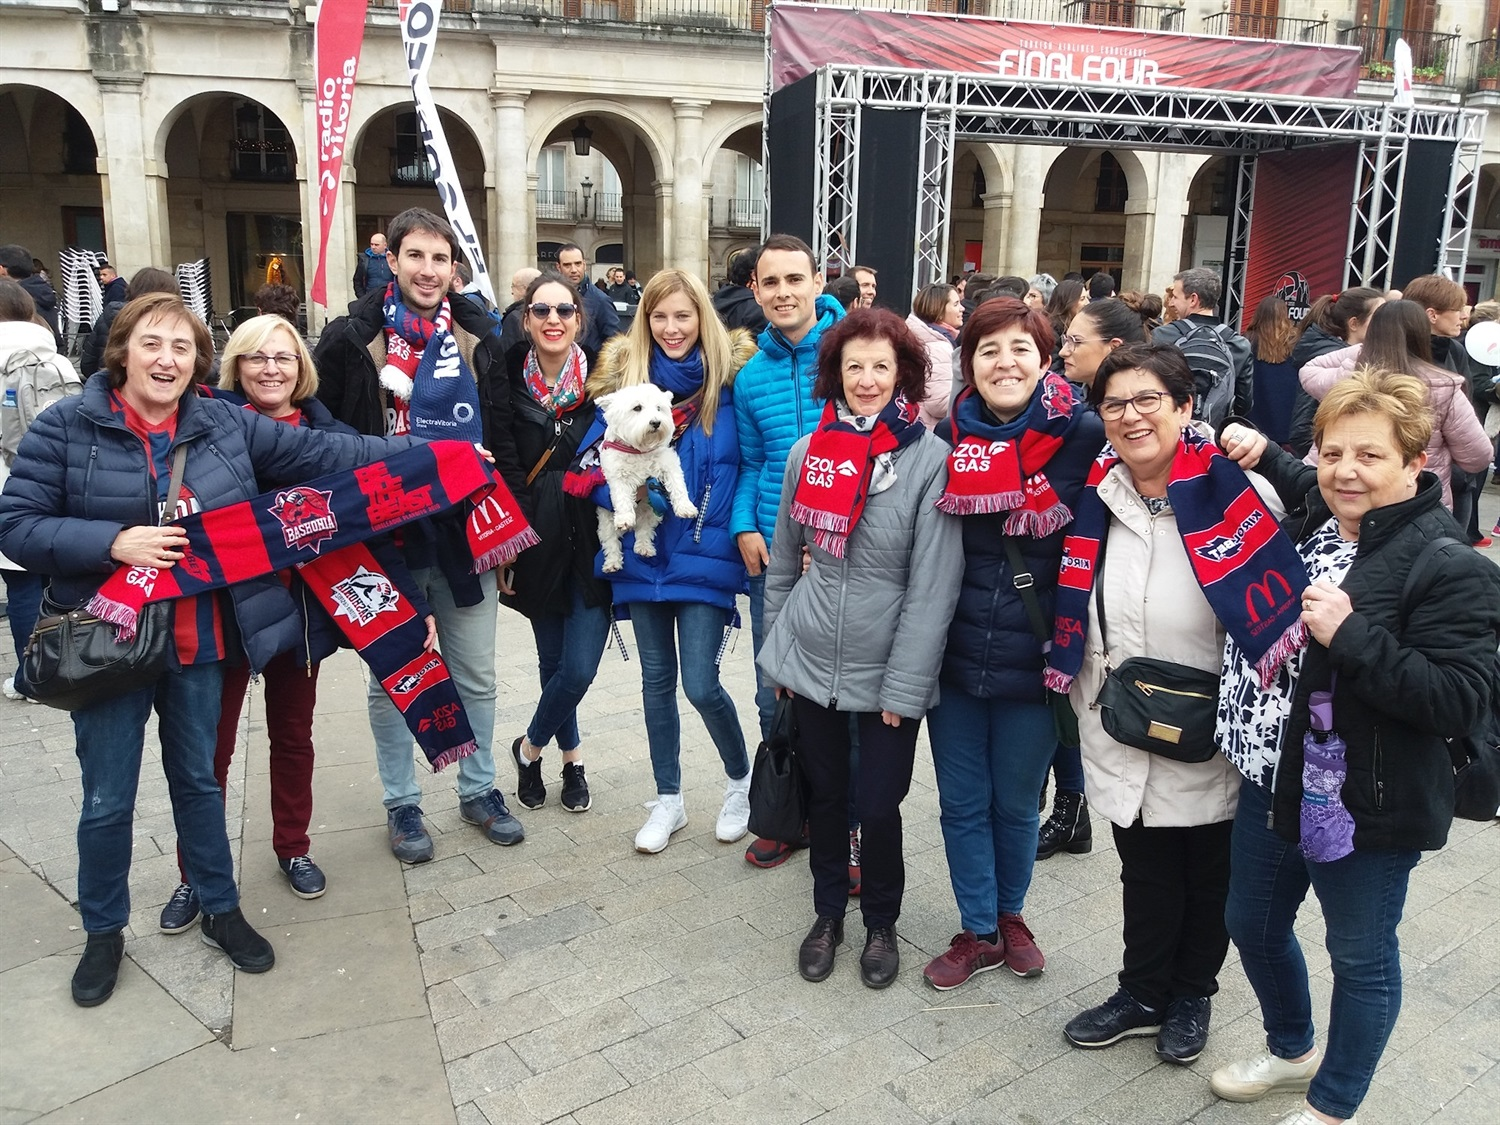 Fans Baskonia - FanZone - Final Four Vitoria-Gasteiz 2019 - EB18